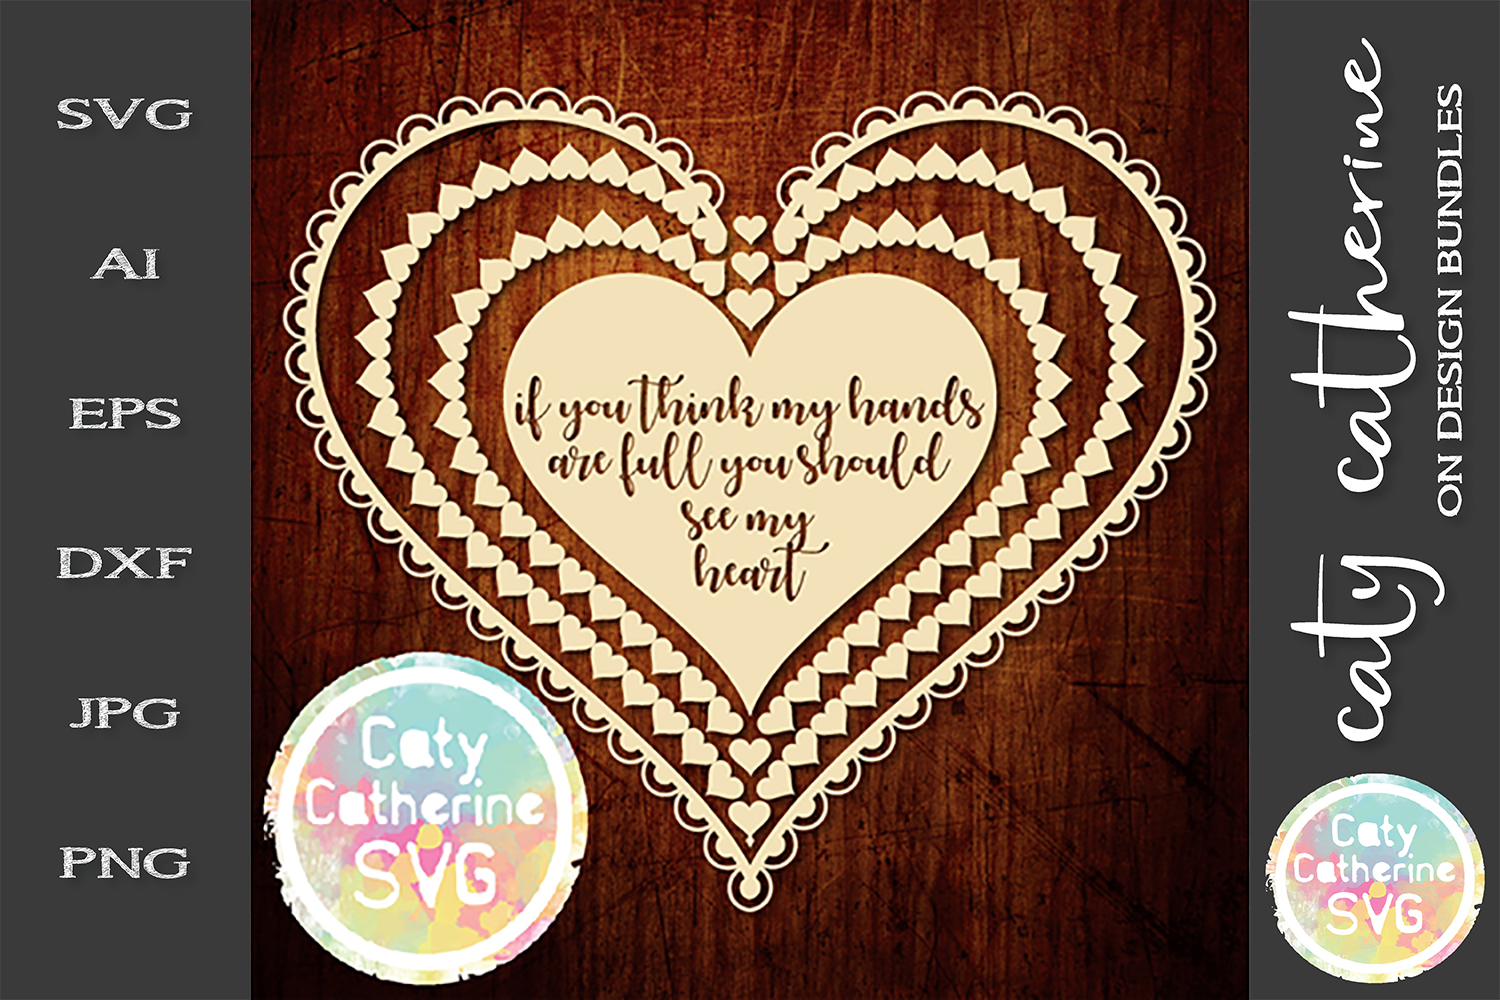 If You Think My Hands Are Full You Should See My Heart SVG example image 1